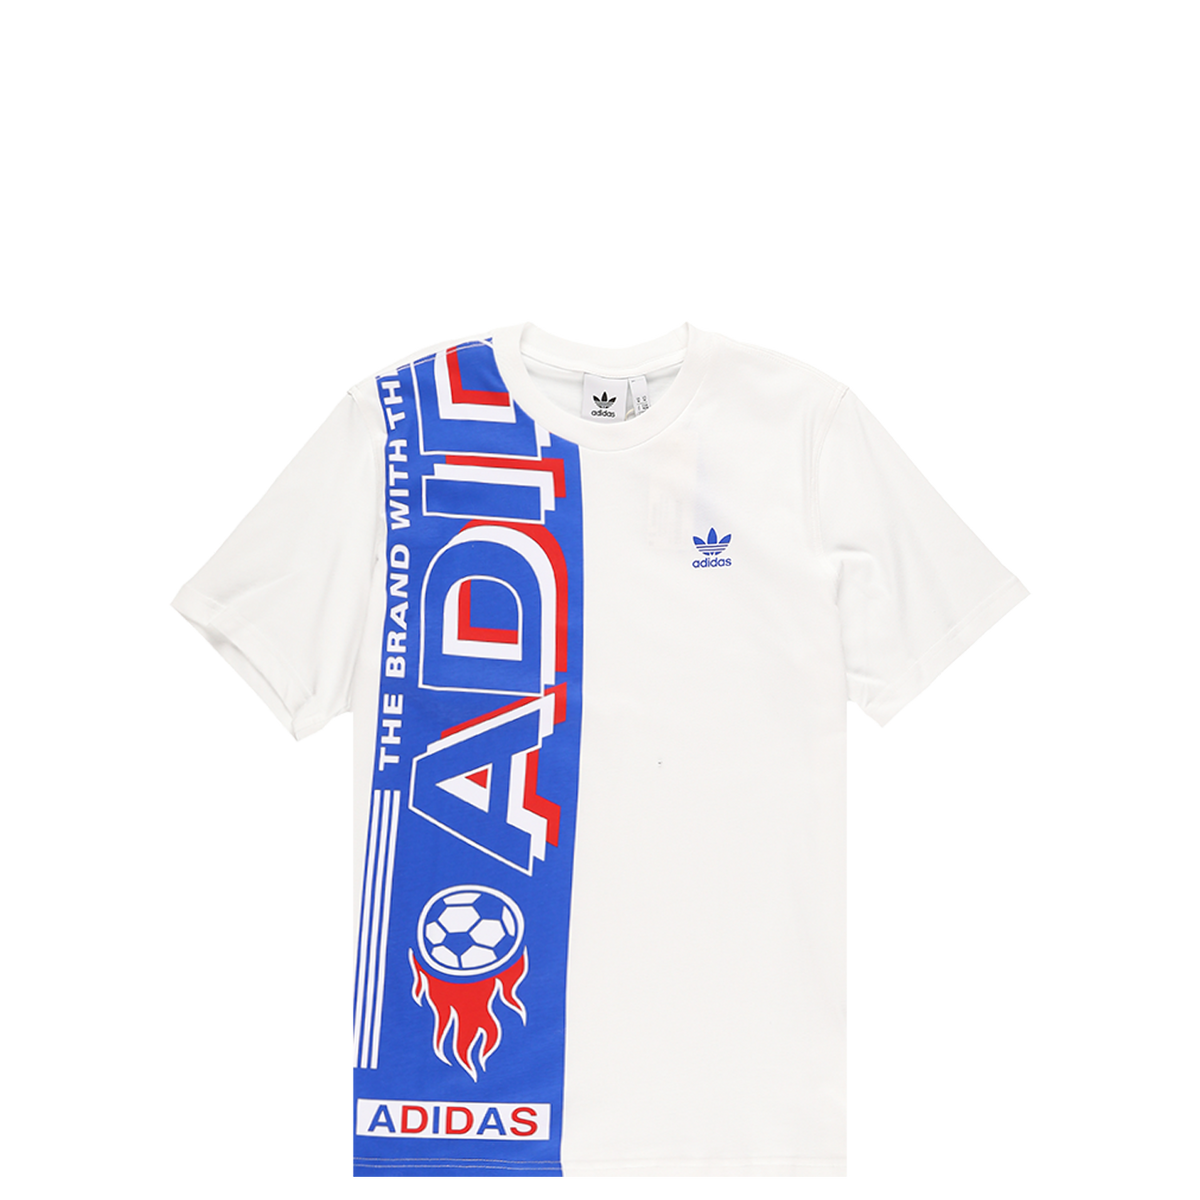 adidas Originals Side Scarf T-Shirt  - XHIBITION